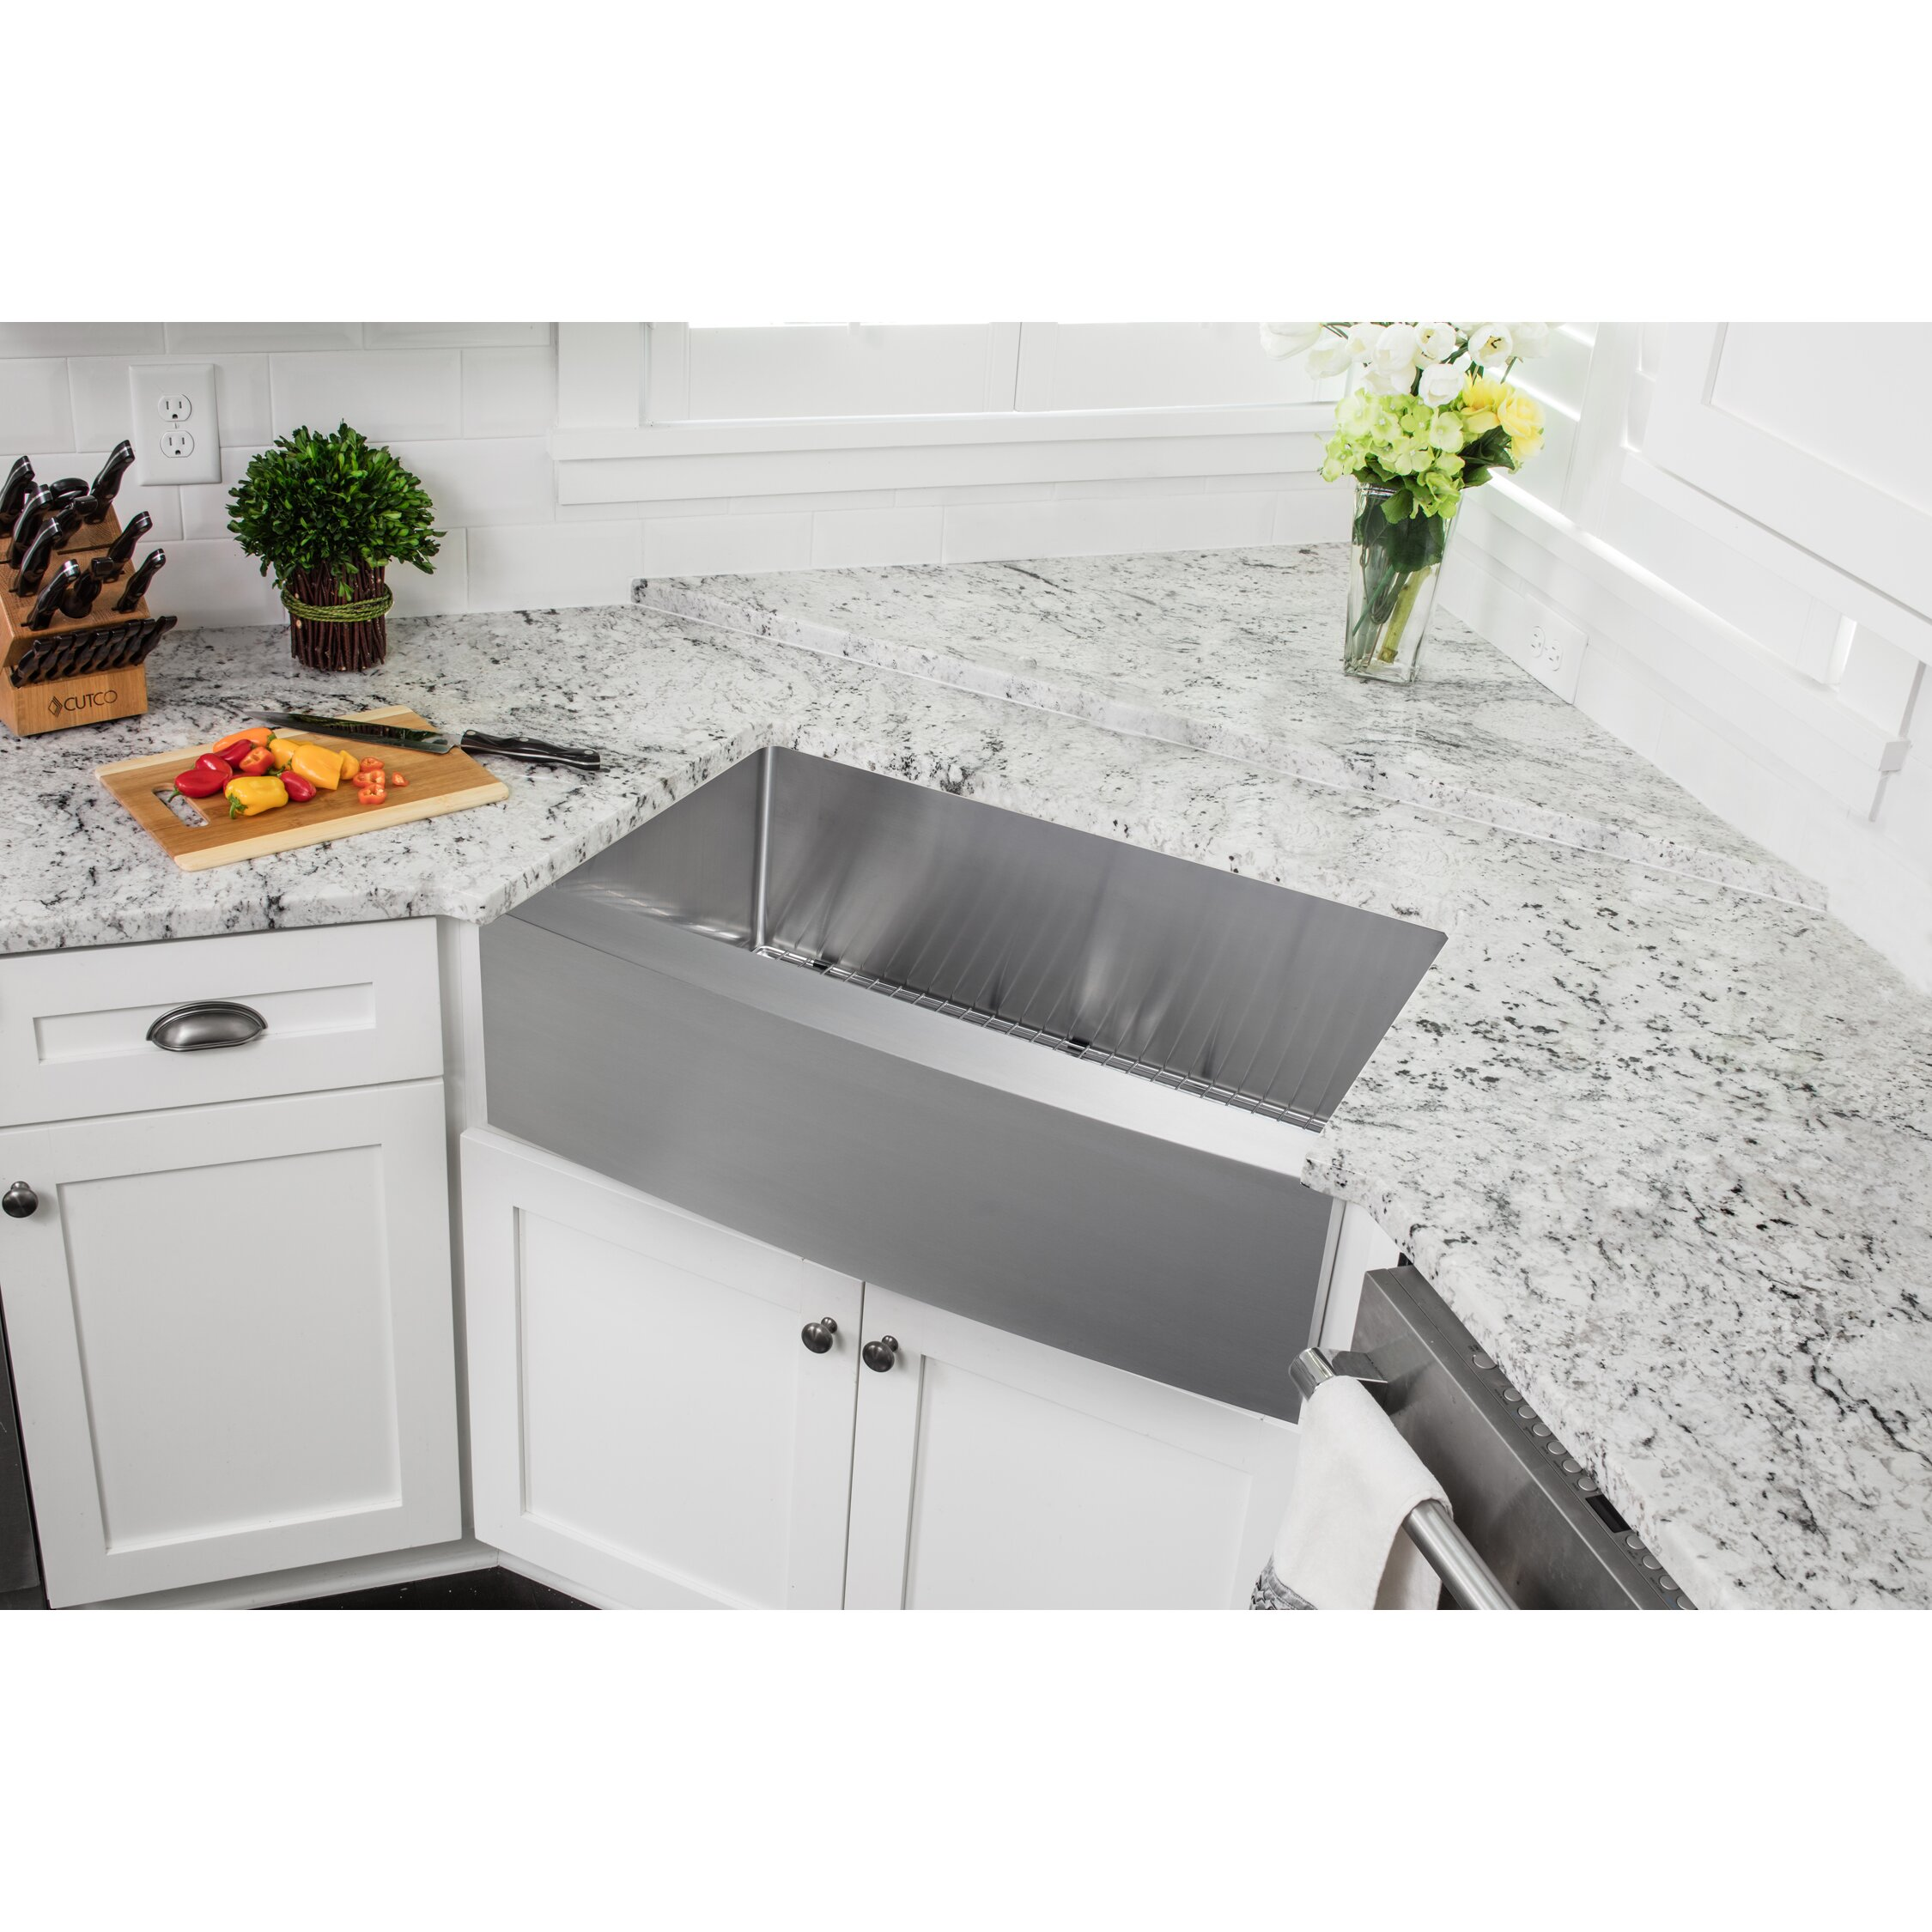 Soleil 36 x 20 stainless steel 16 gauge apron front single bowl kitchen sink reviews - Kitchen sinks apron front ...